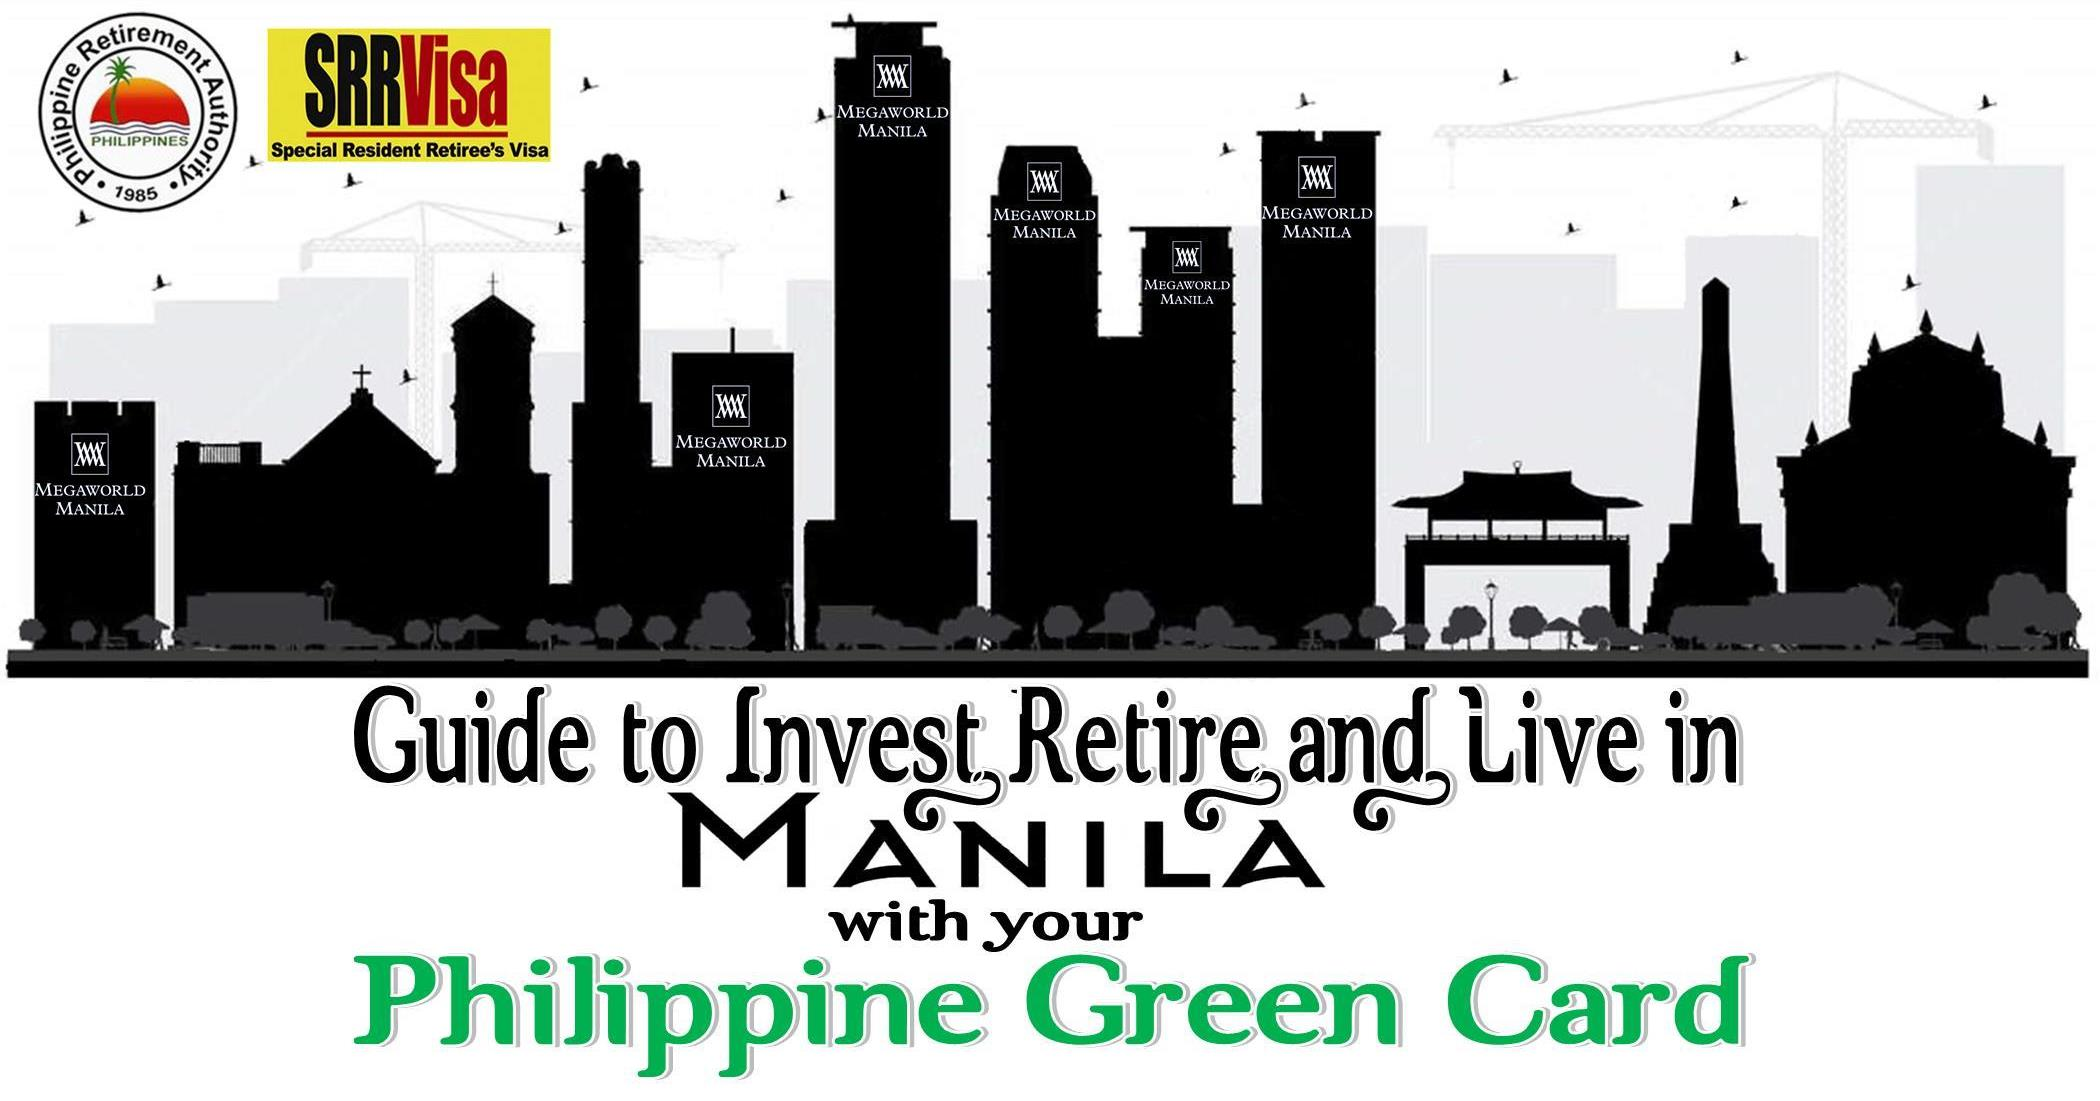 Guide to Invest, Retire and Live in Manila with Your Philippine Green Card